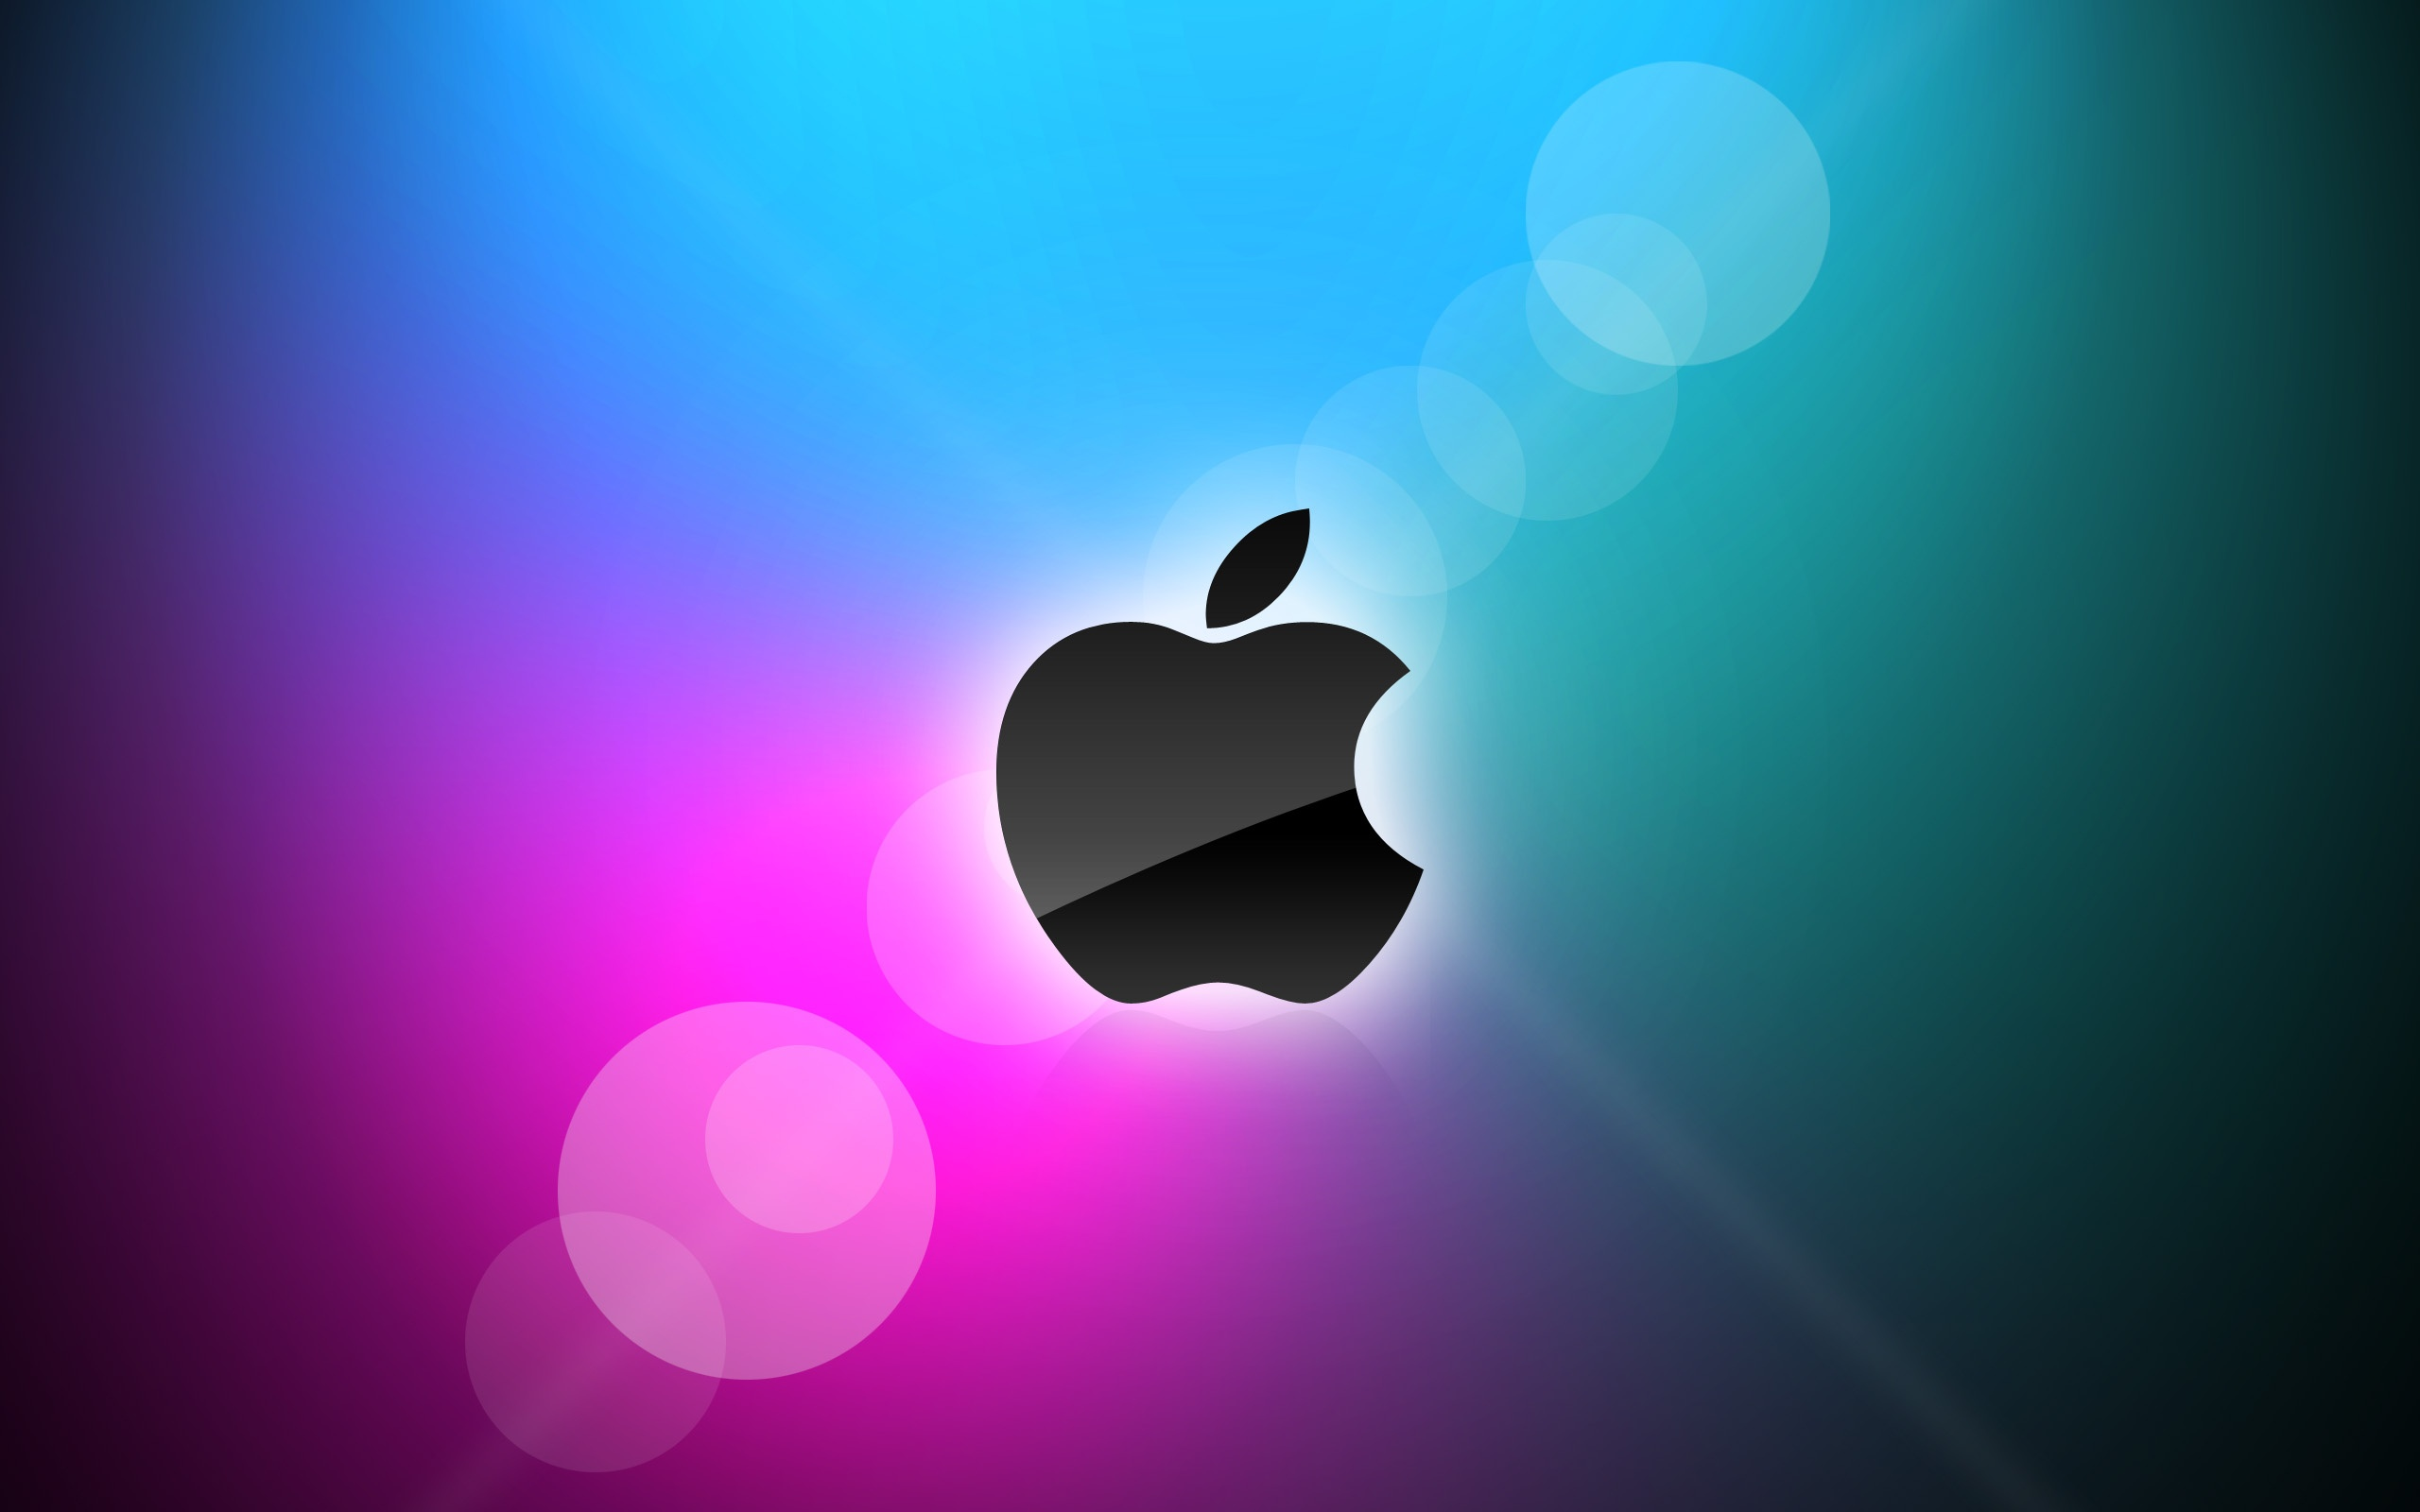 Wallpaper Apple Blue And Purple Background 2560x1600 Hd